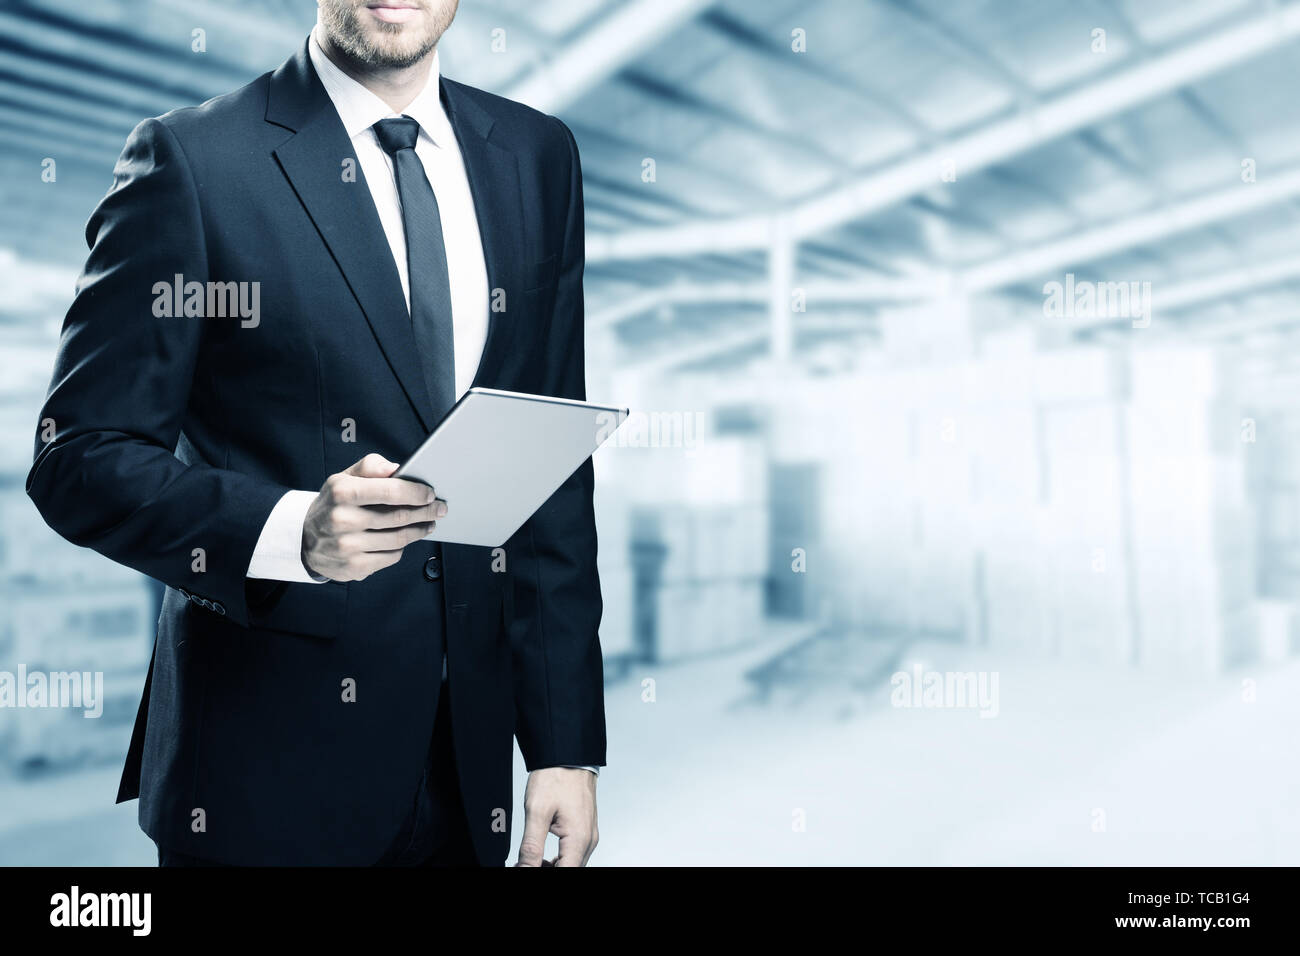 448e91a7a4ea4 double exposure of businessman with tablet on building background ...